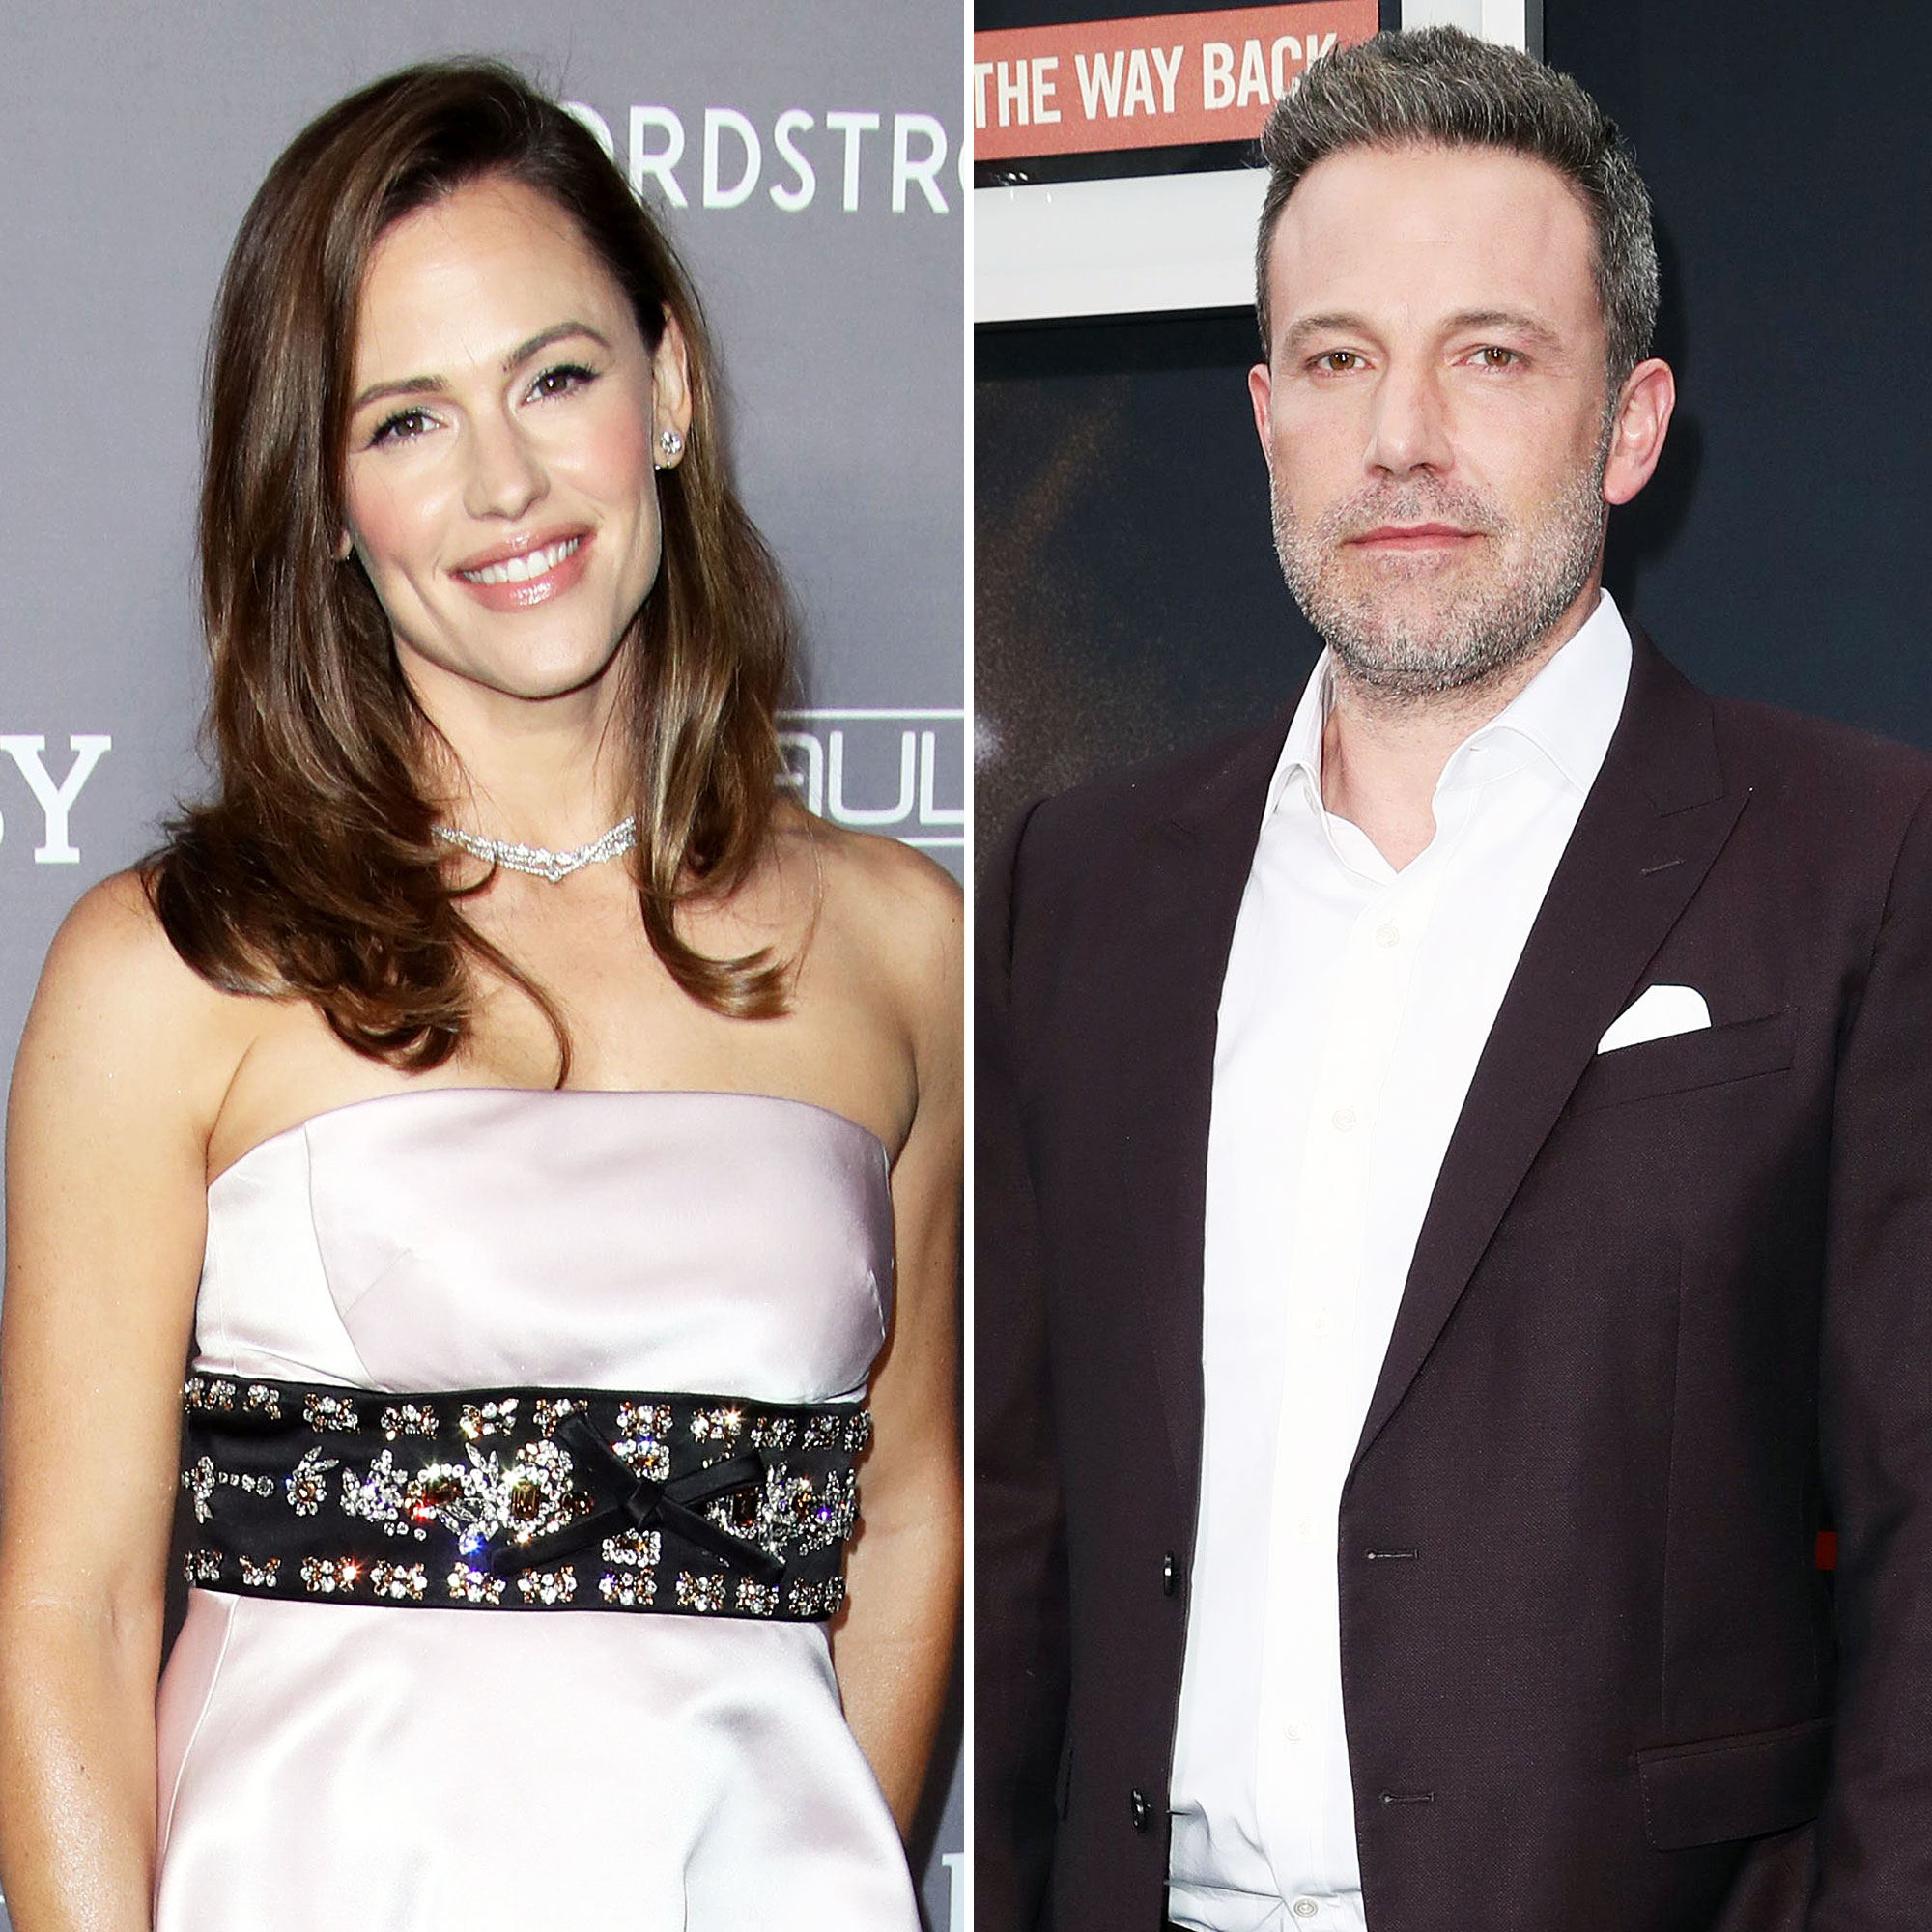 Jennifer Garner Is Happy to See Ex-Husband Ben Affleck in a Good Place